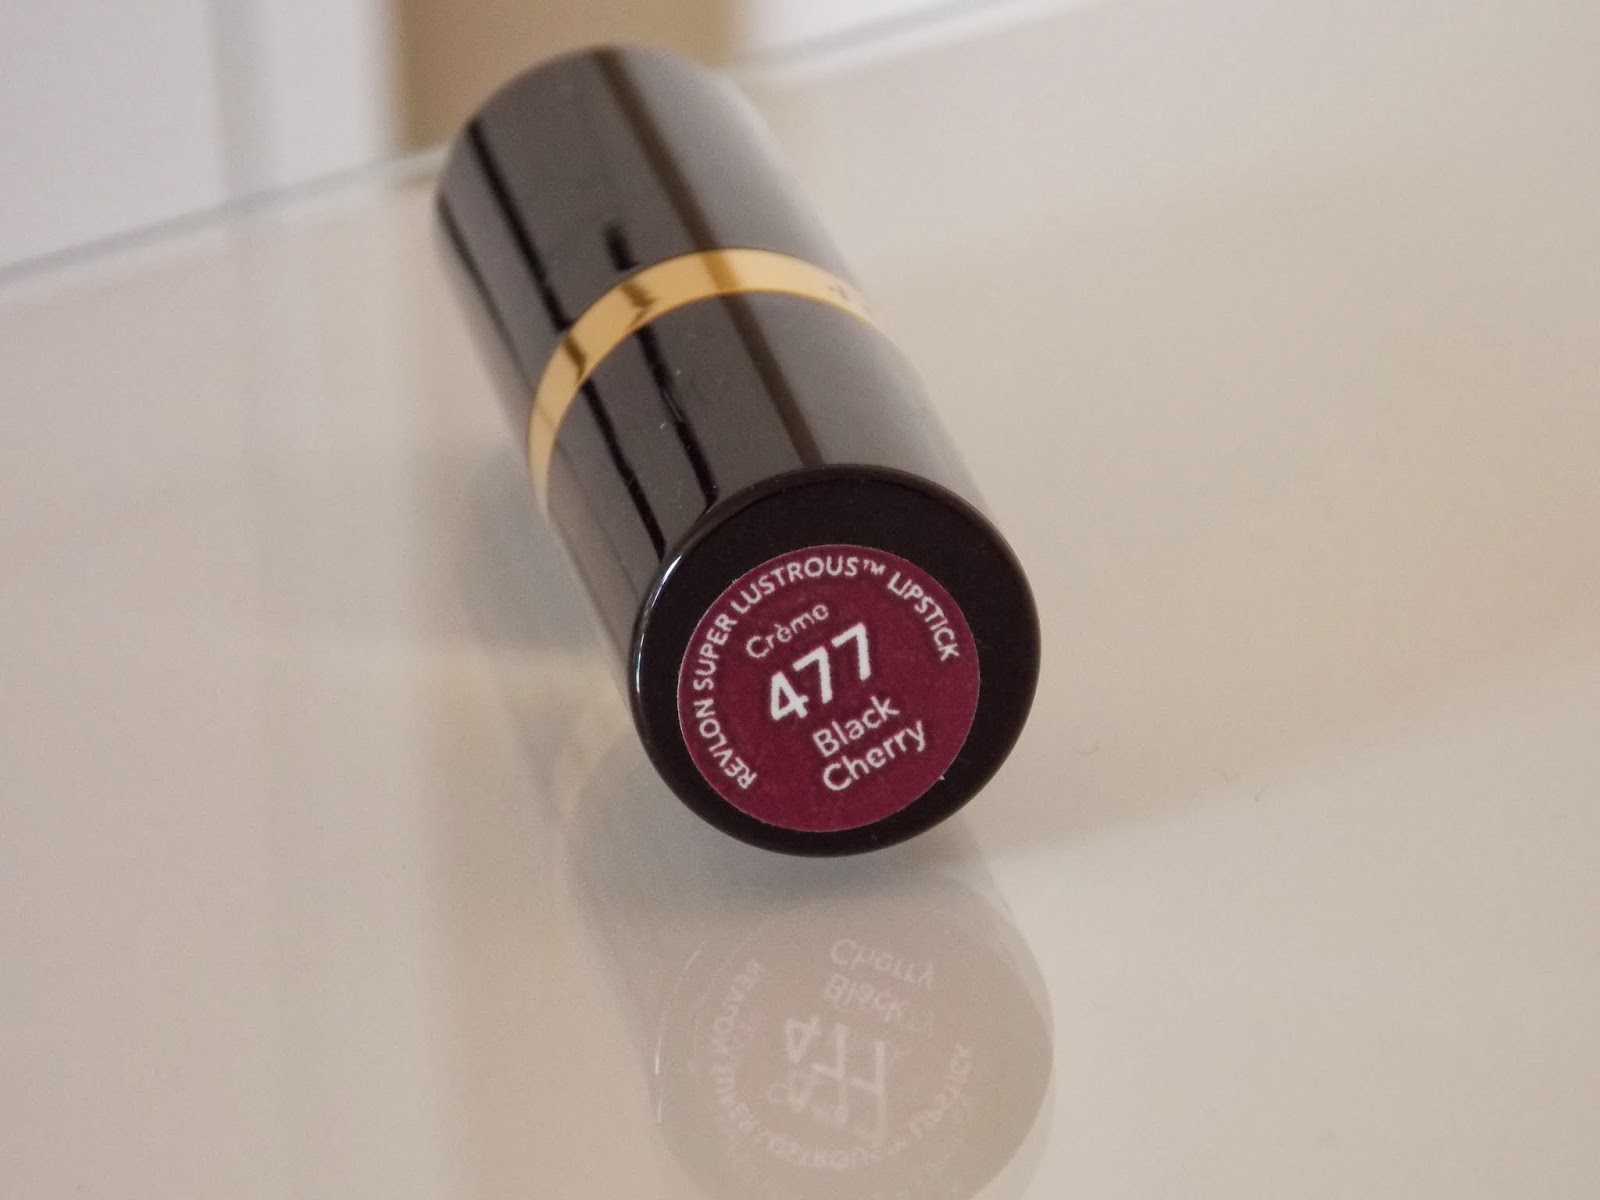 Revlon Super Lustrous Lipstick in Black Cherry